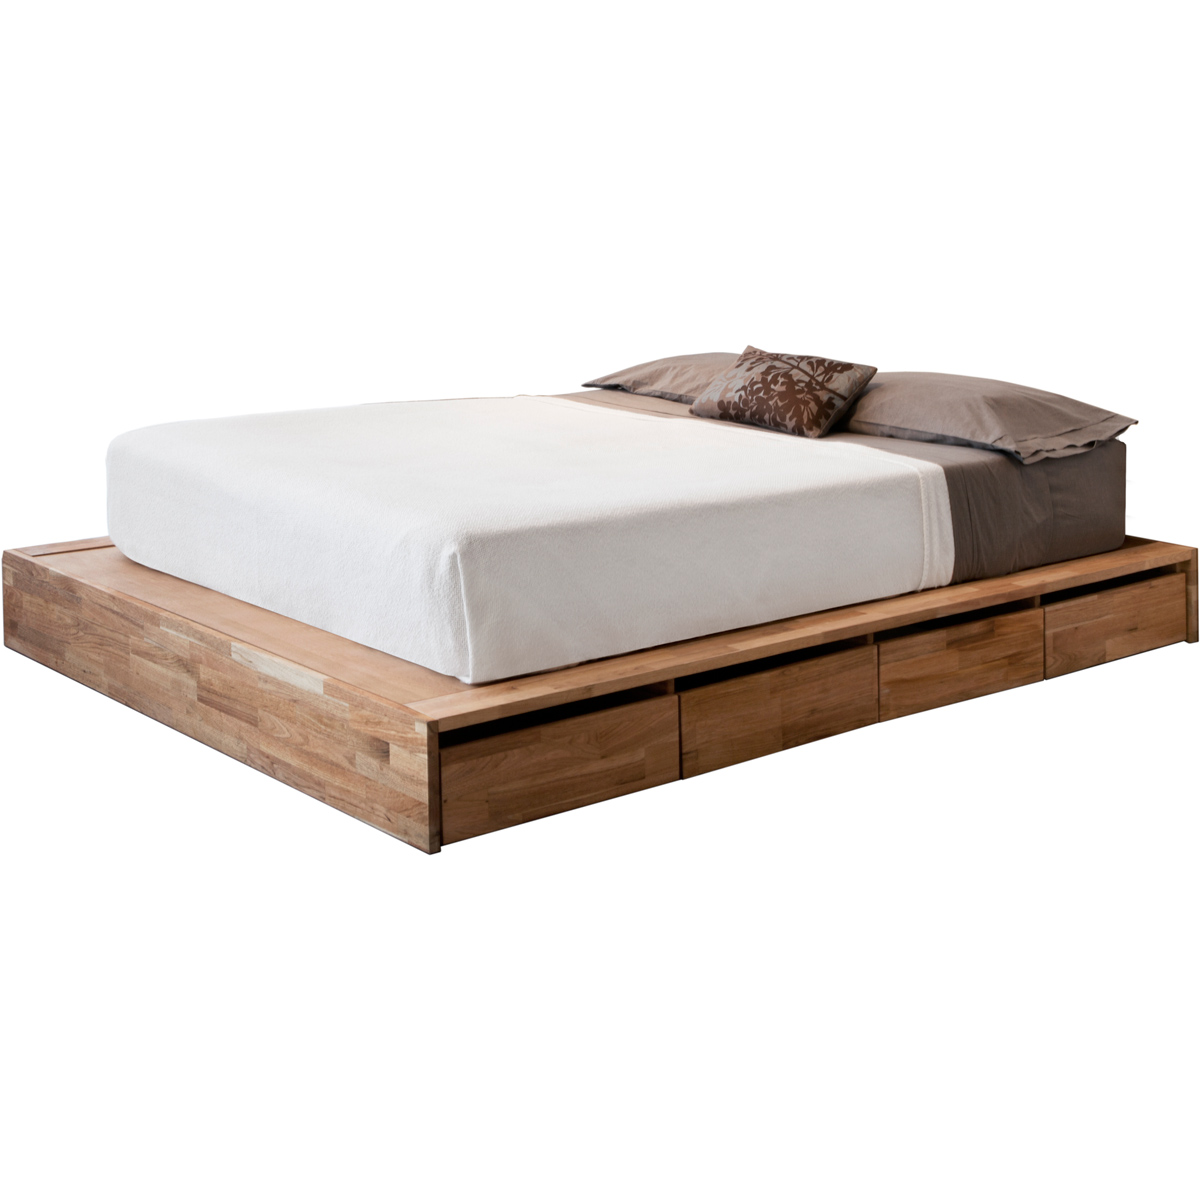 the comfortable and beautiful designs of ikea bed frame